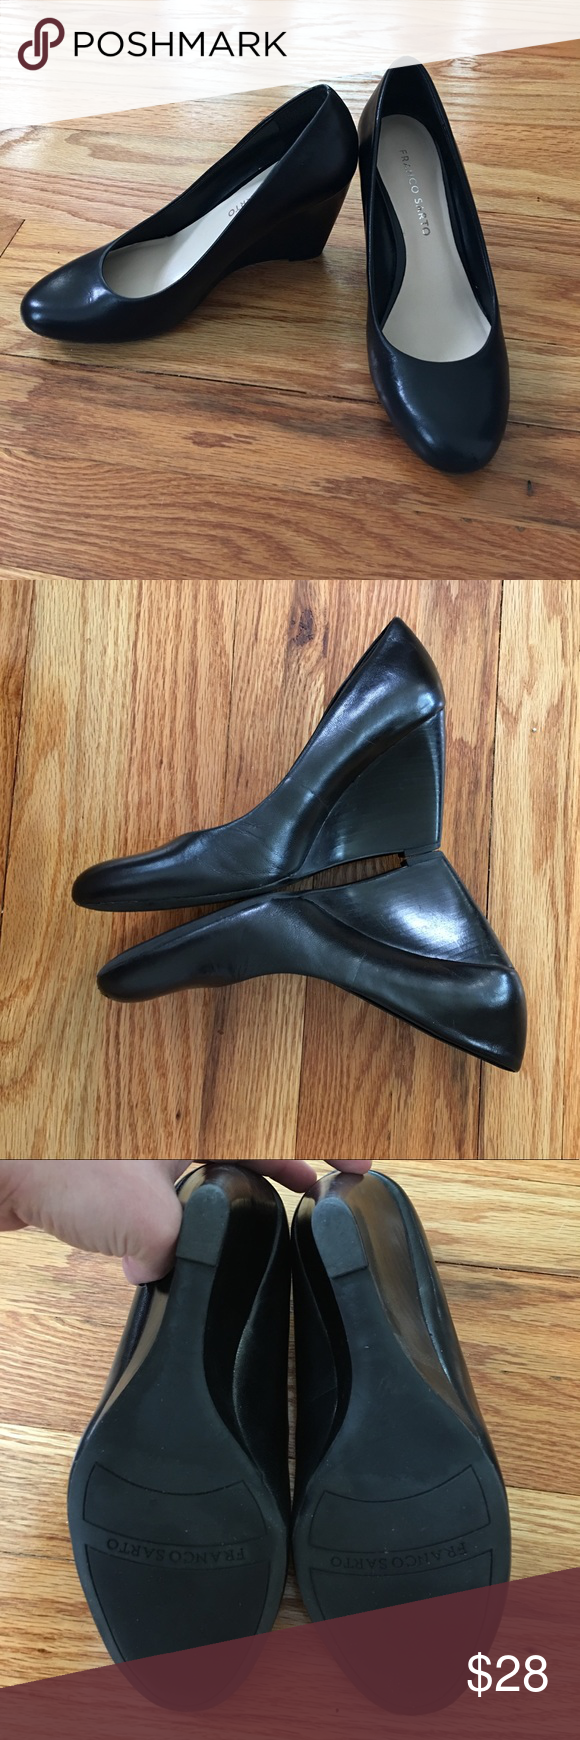 c910c9c8262e Franco Sarto Helio wedge heels Classic Franco Sarto Helio wedge pumps. Good  used condition. Front toe on left heel has a scuff and very minor wear on  back ...